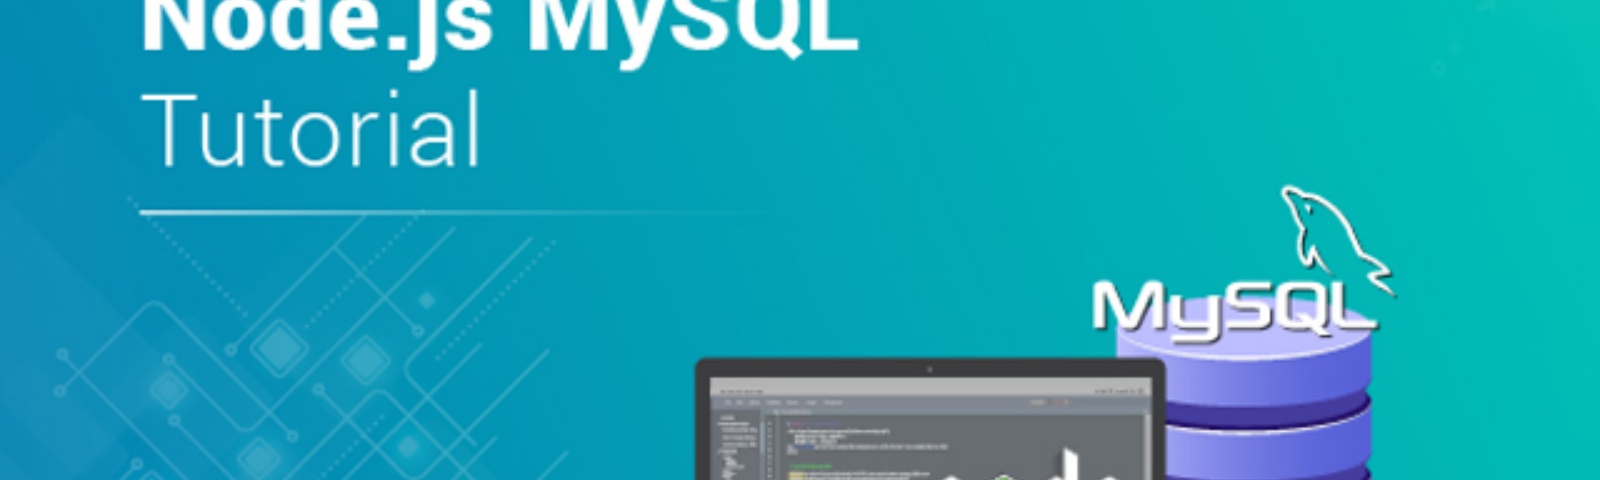 Node js MySQL Tutorial - How to Build a CRUD Application